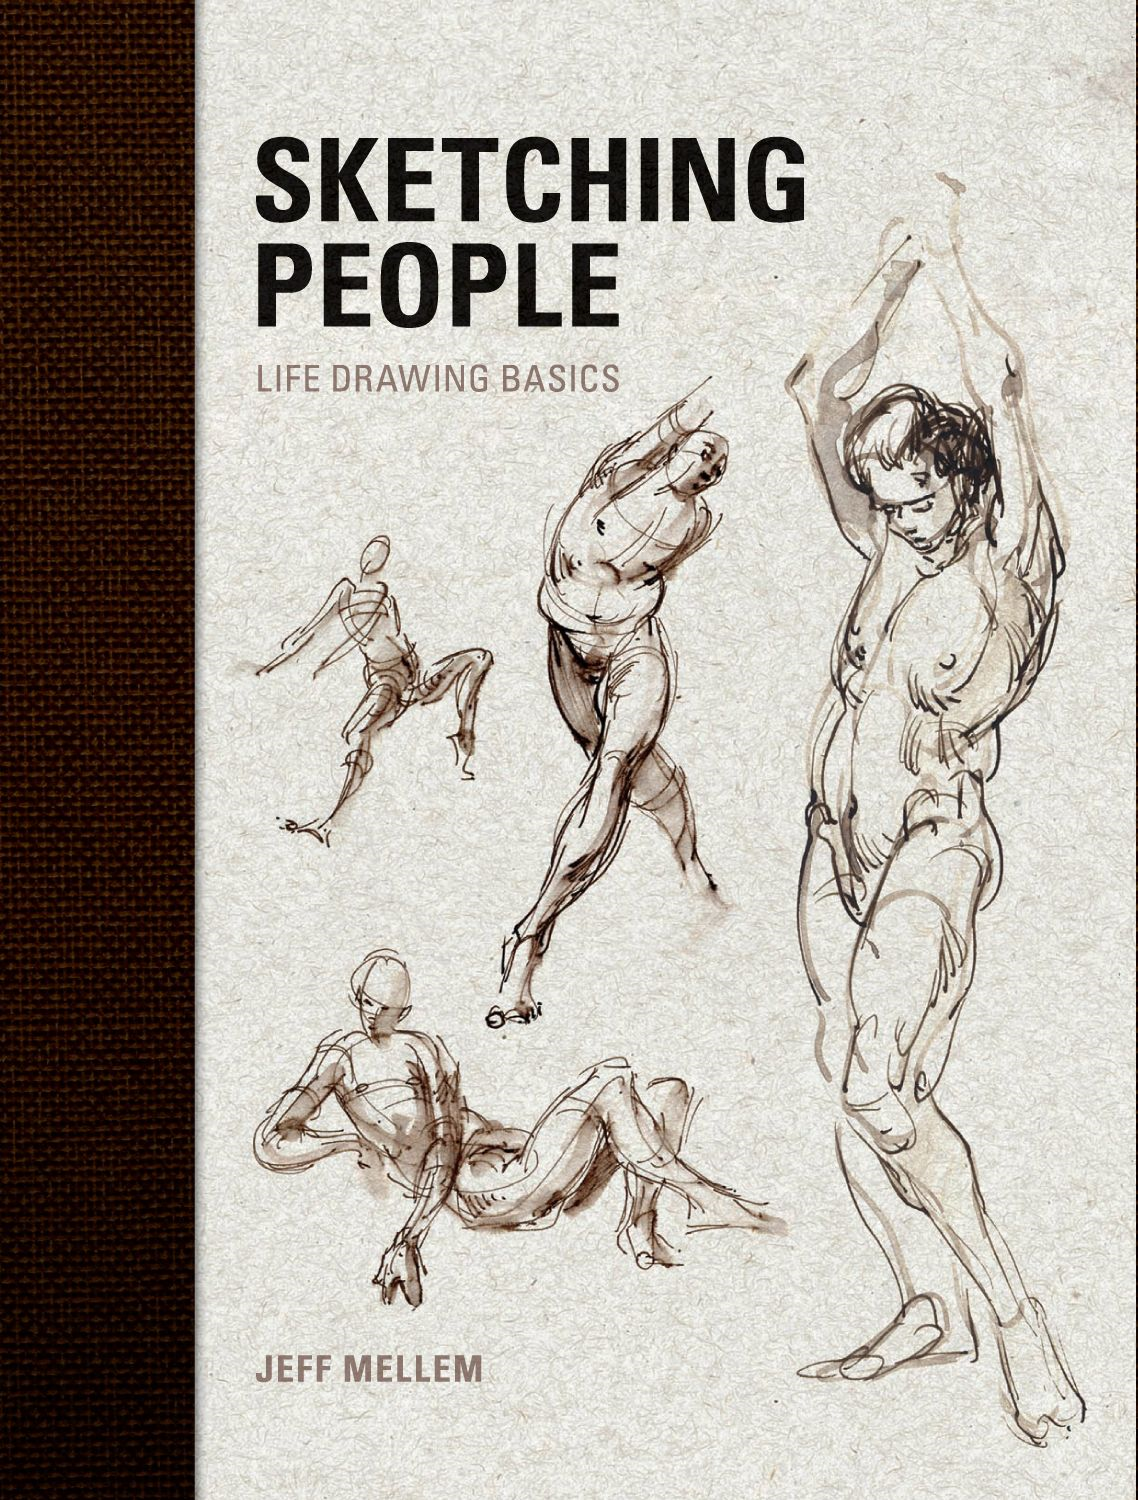 Sketching People: Life Drawing Basics By: Jeff Mellern